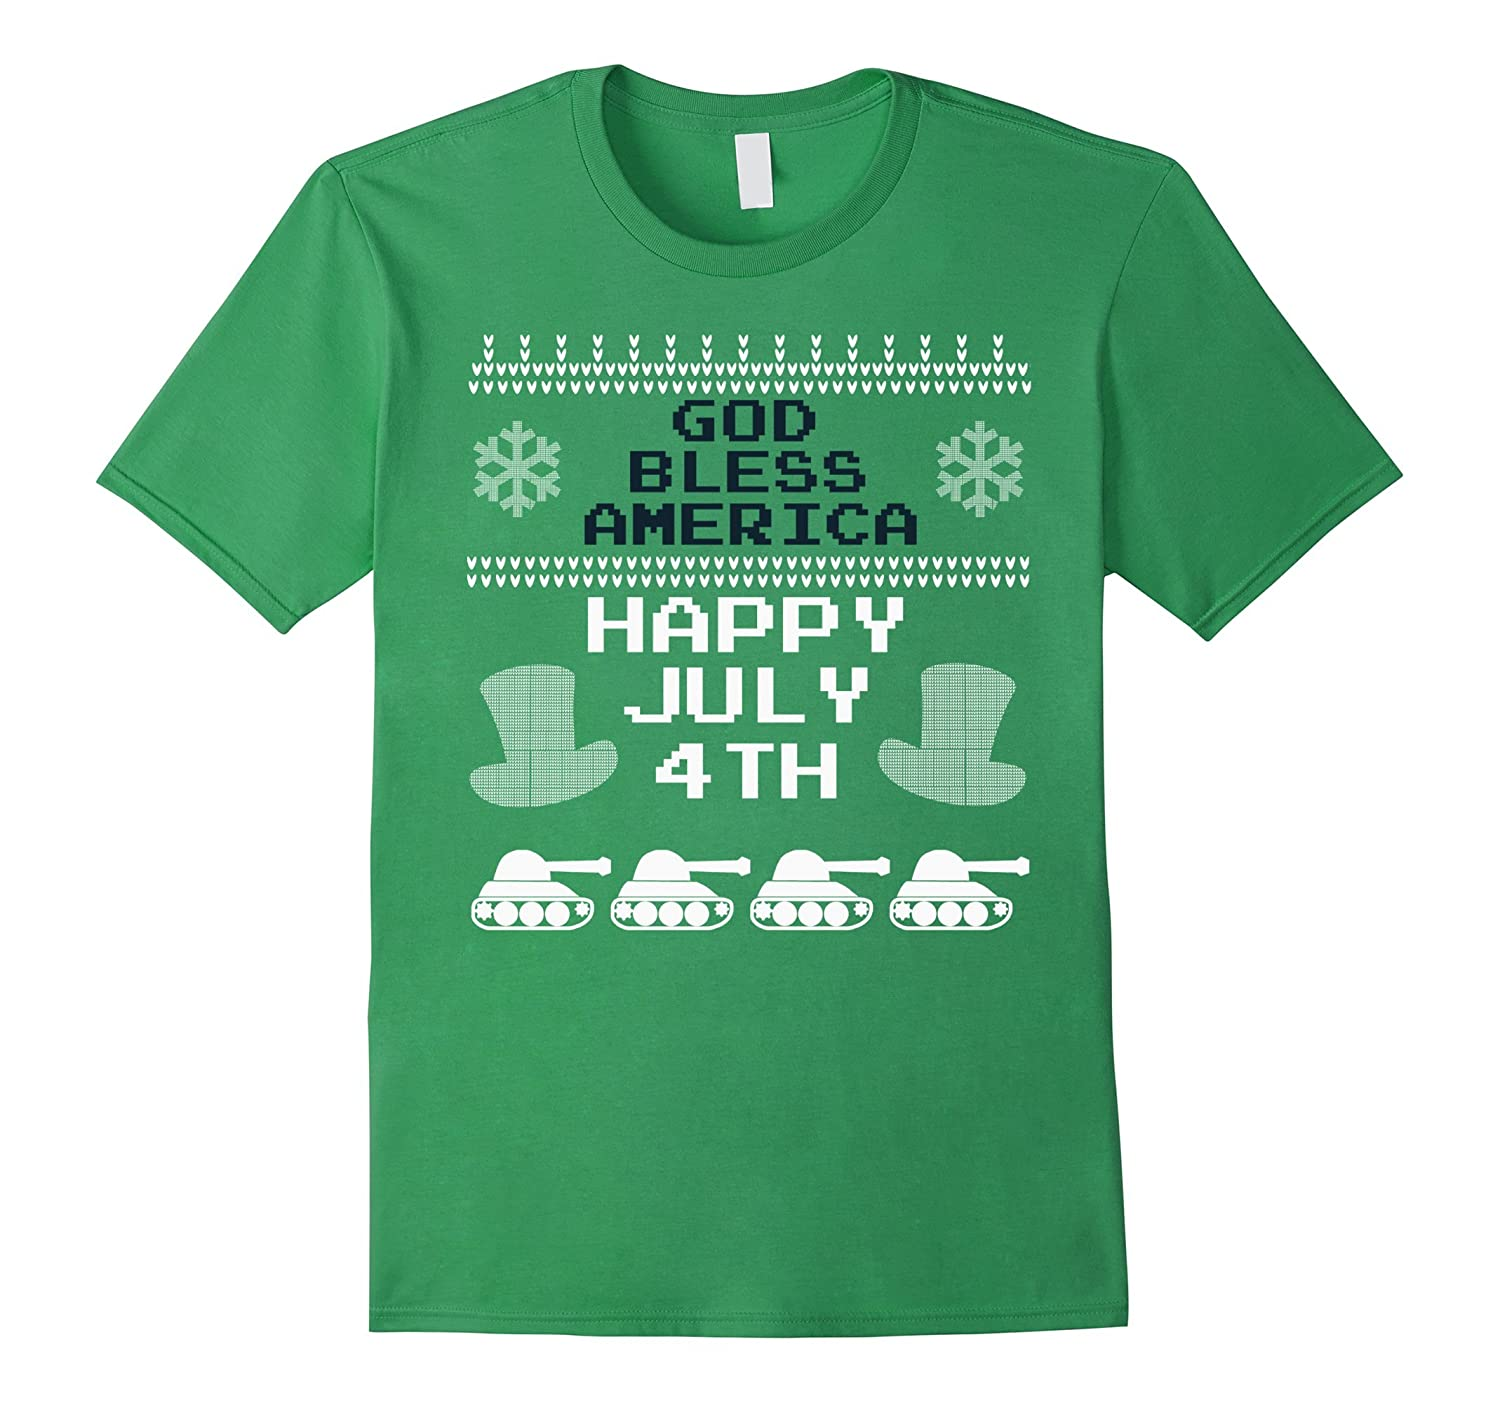 HAPPY JULY 4TH FOURTH GOD BLESS AMERICA USA MILITARY T-SHIRT